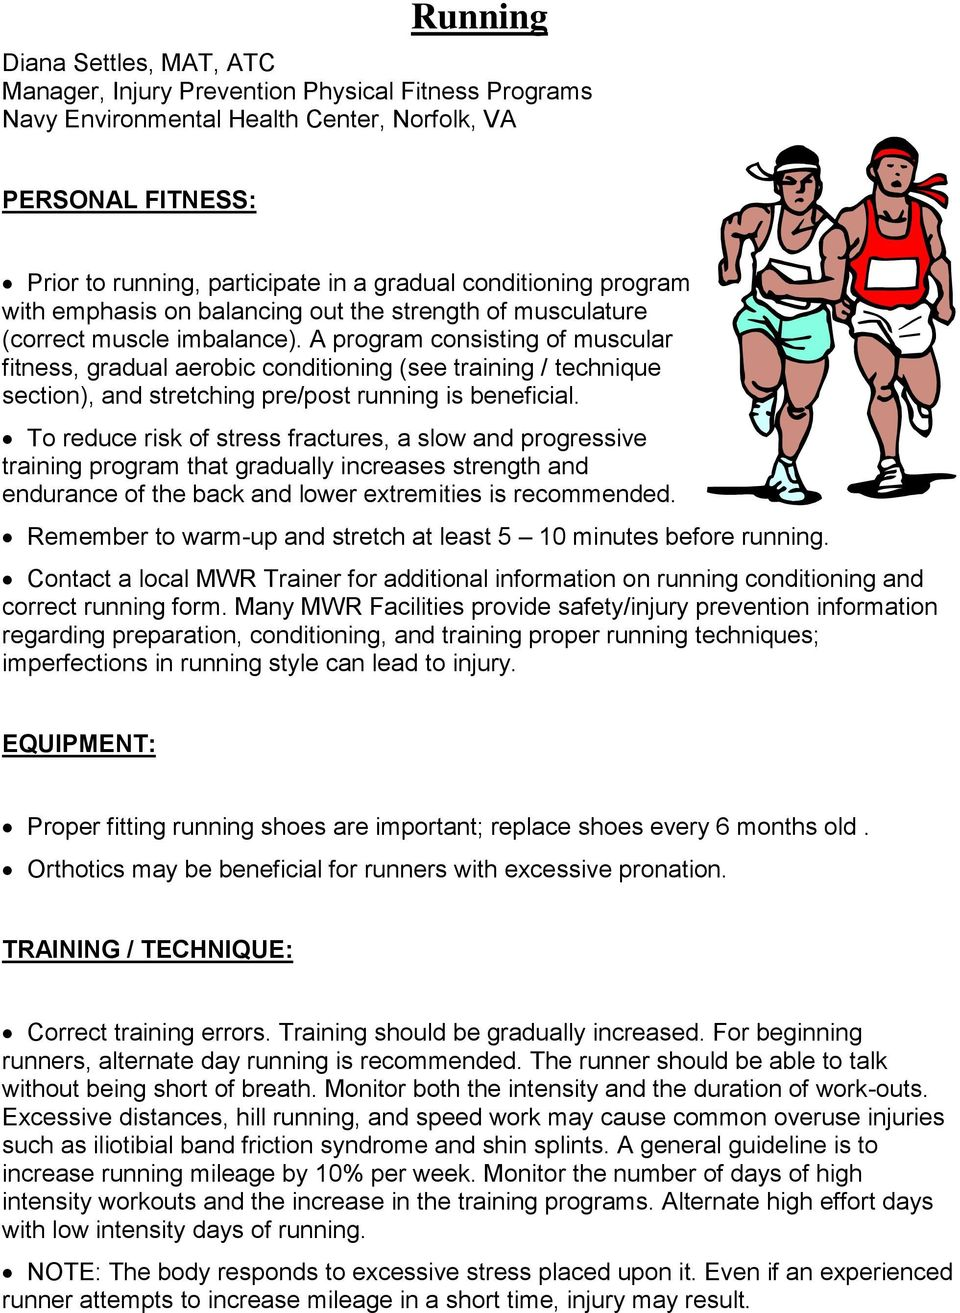 A program consisting of muscular fitness, gradual aerobic conditioning (see training / technique section), and stretching pre/post running is beneficial.